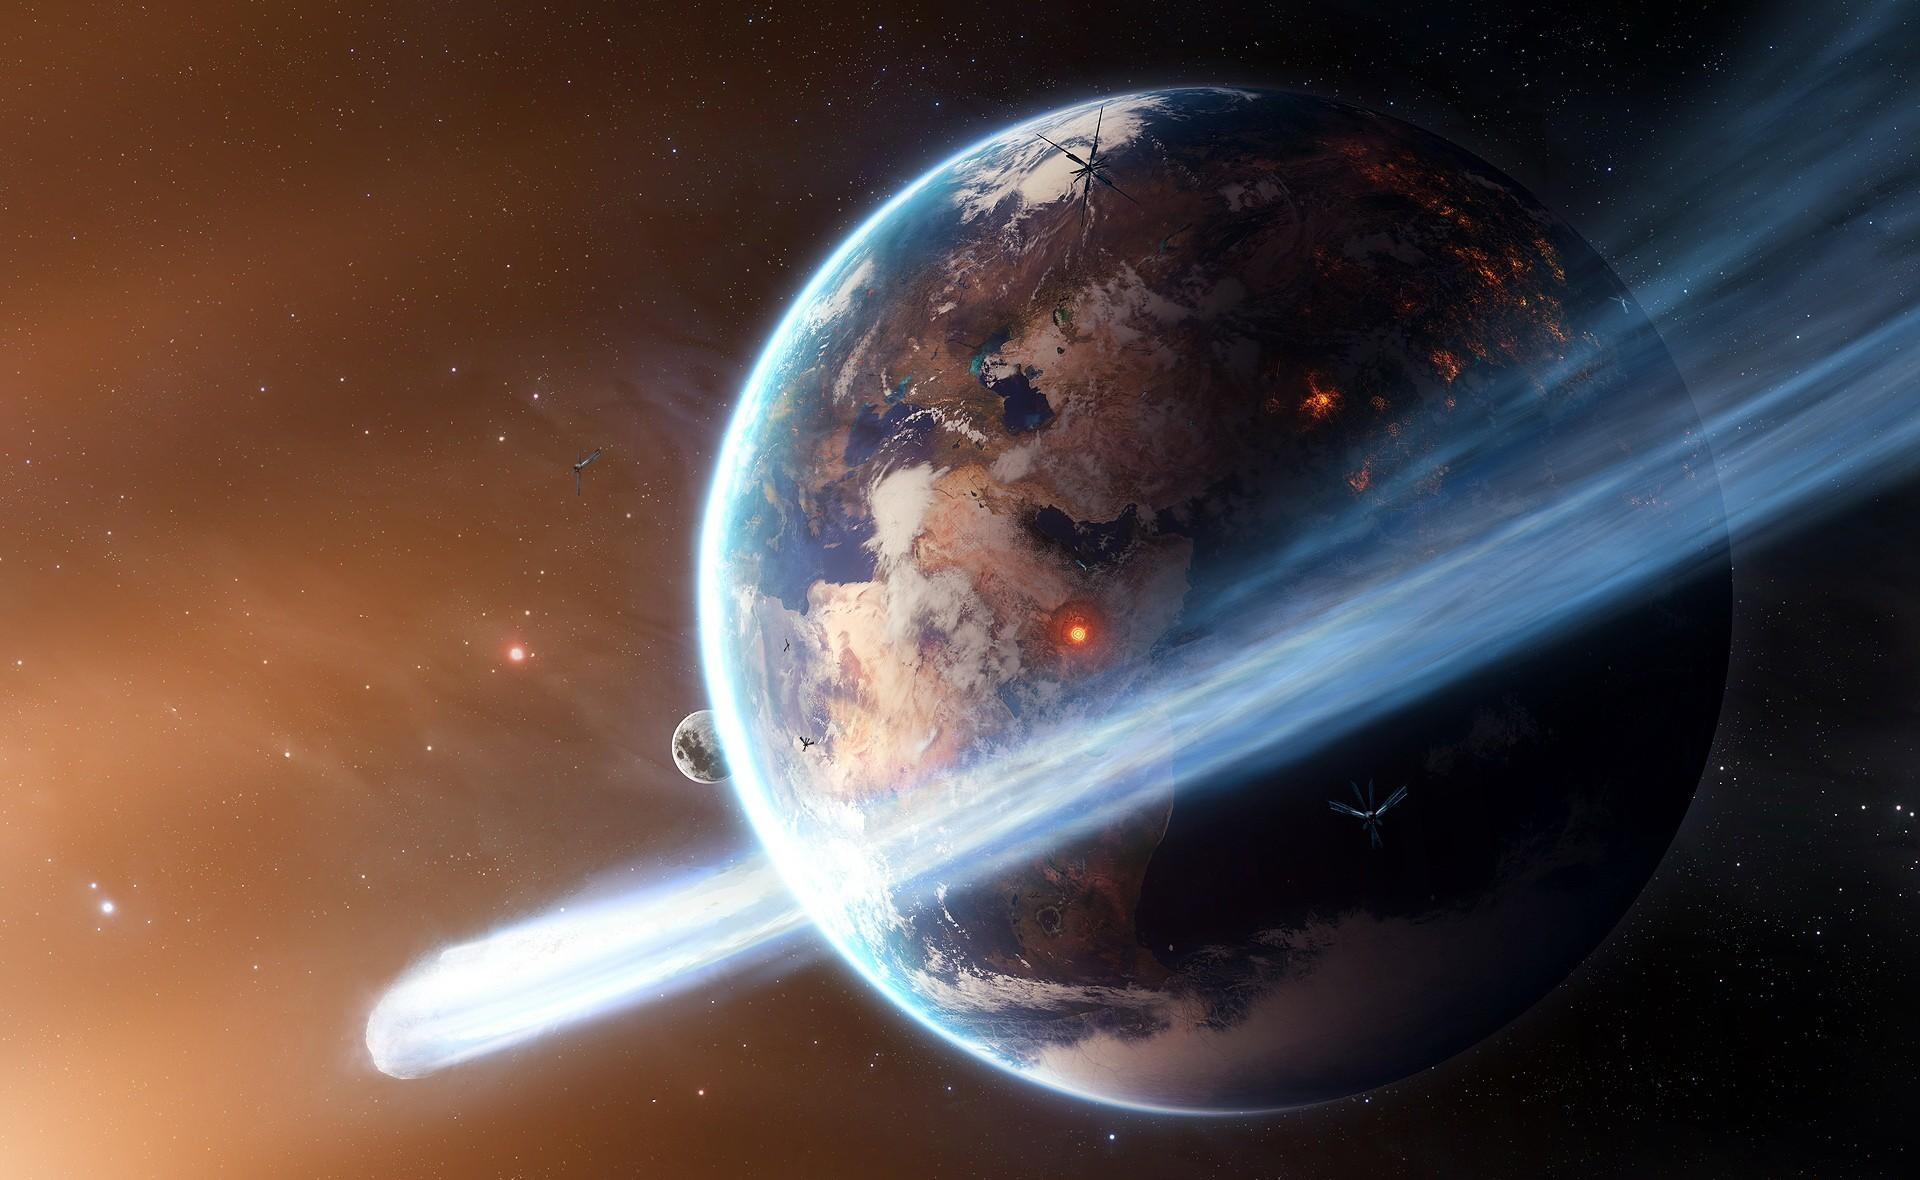 117655 download wallpaper Universe, Explosions, Ring, Planet, Satellites screensavers and pictures for free